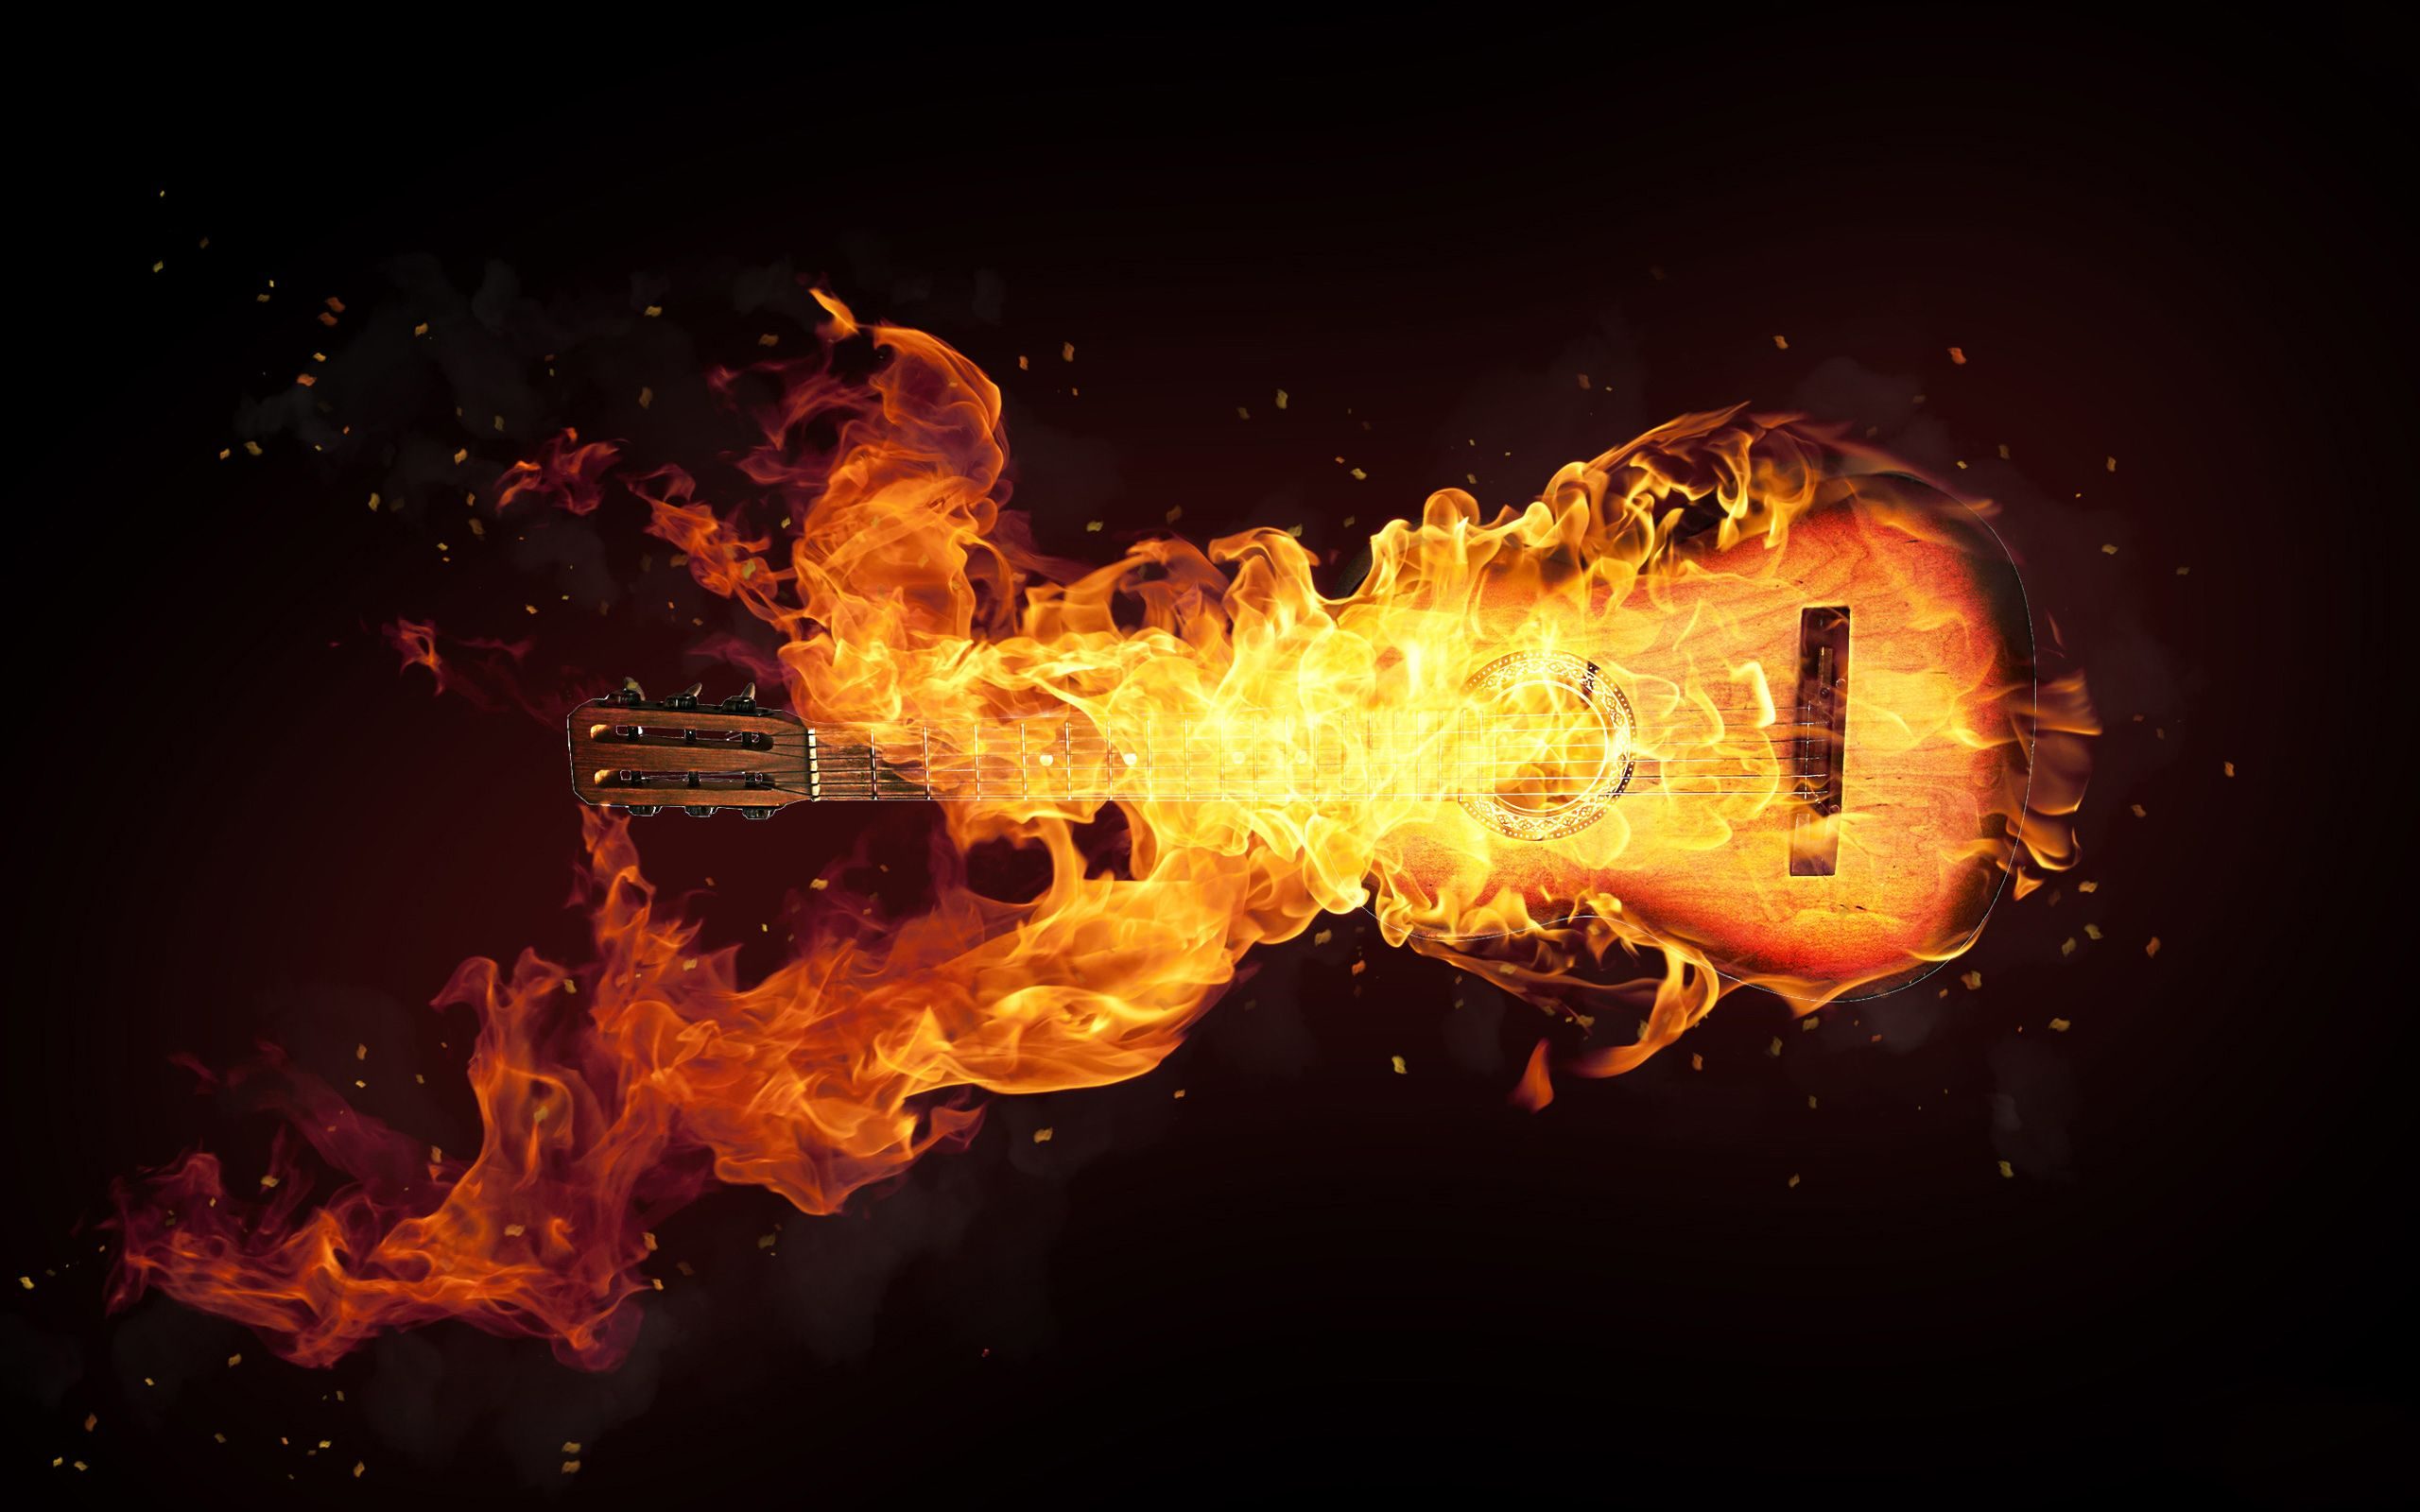 Fire Effect Guitar Hd Wallpaper Dazzling Wallpaper